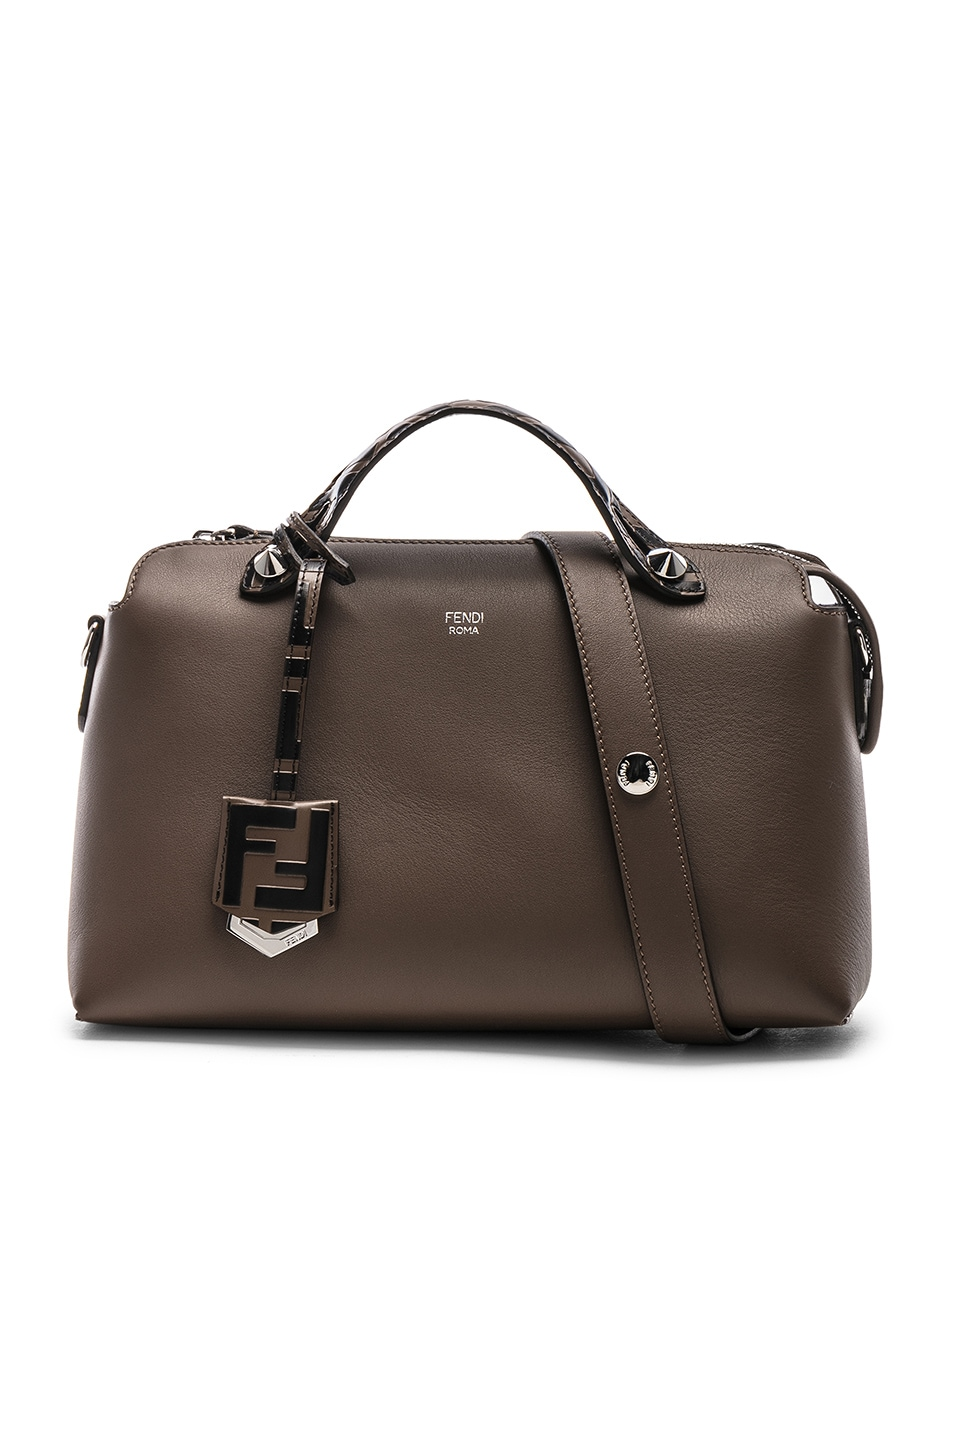 Image 1 of Fendi Medium Crossbody Bag in Chocolate